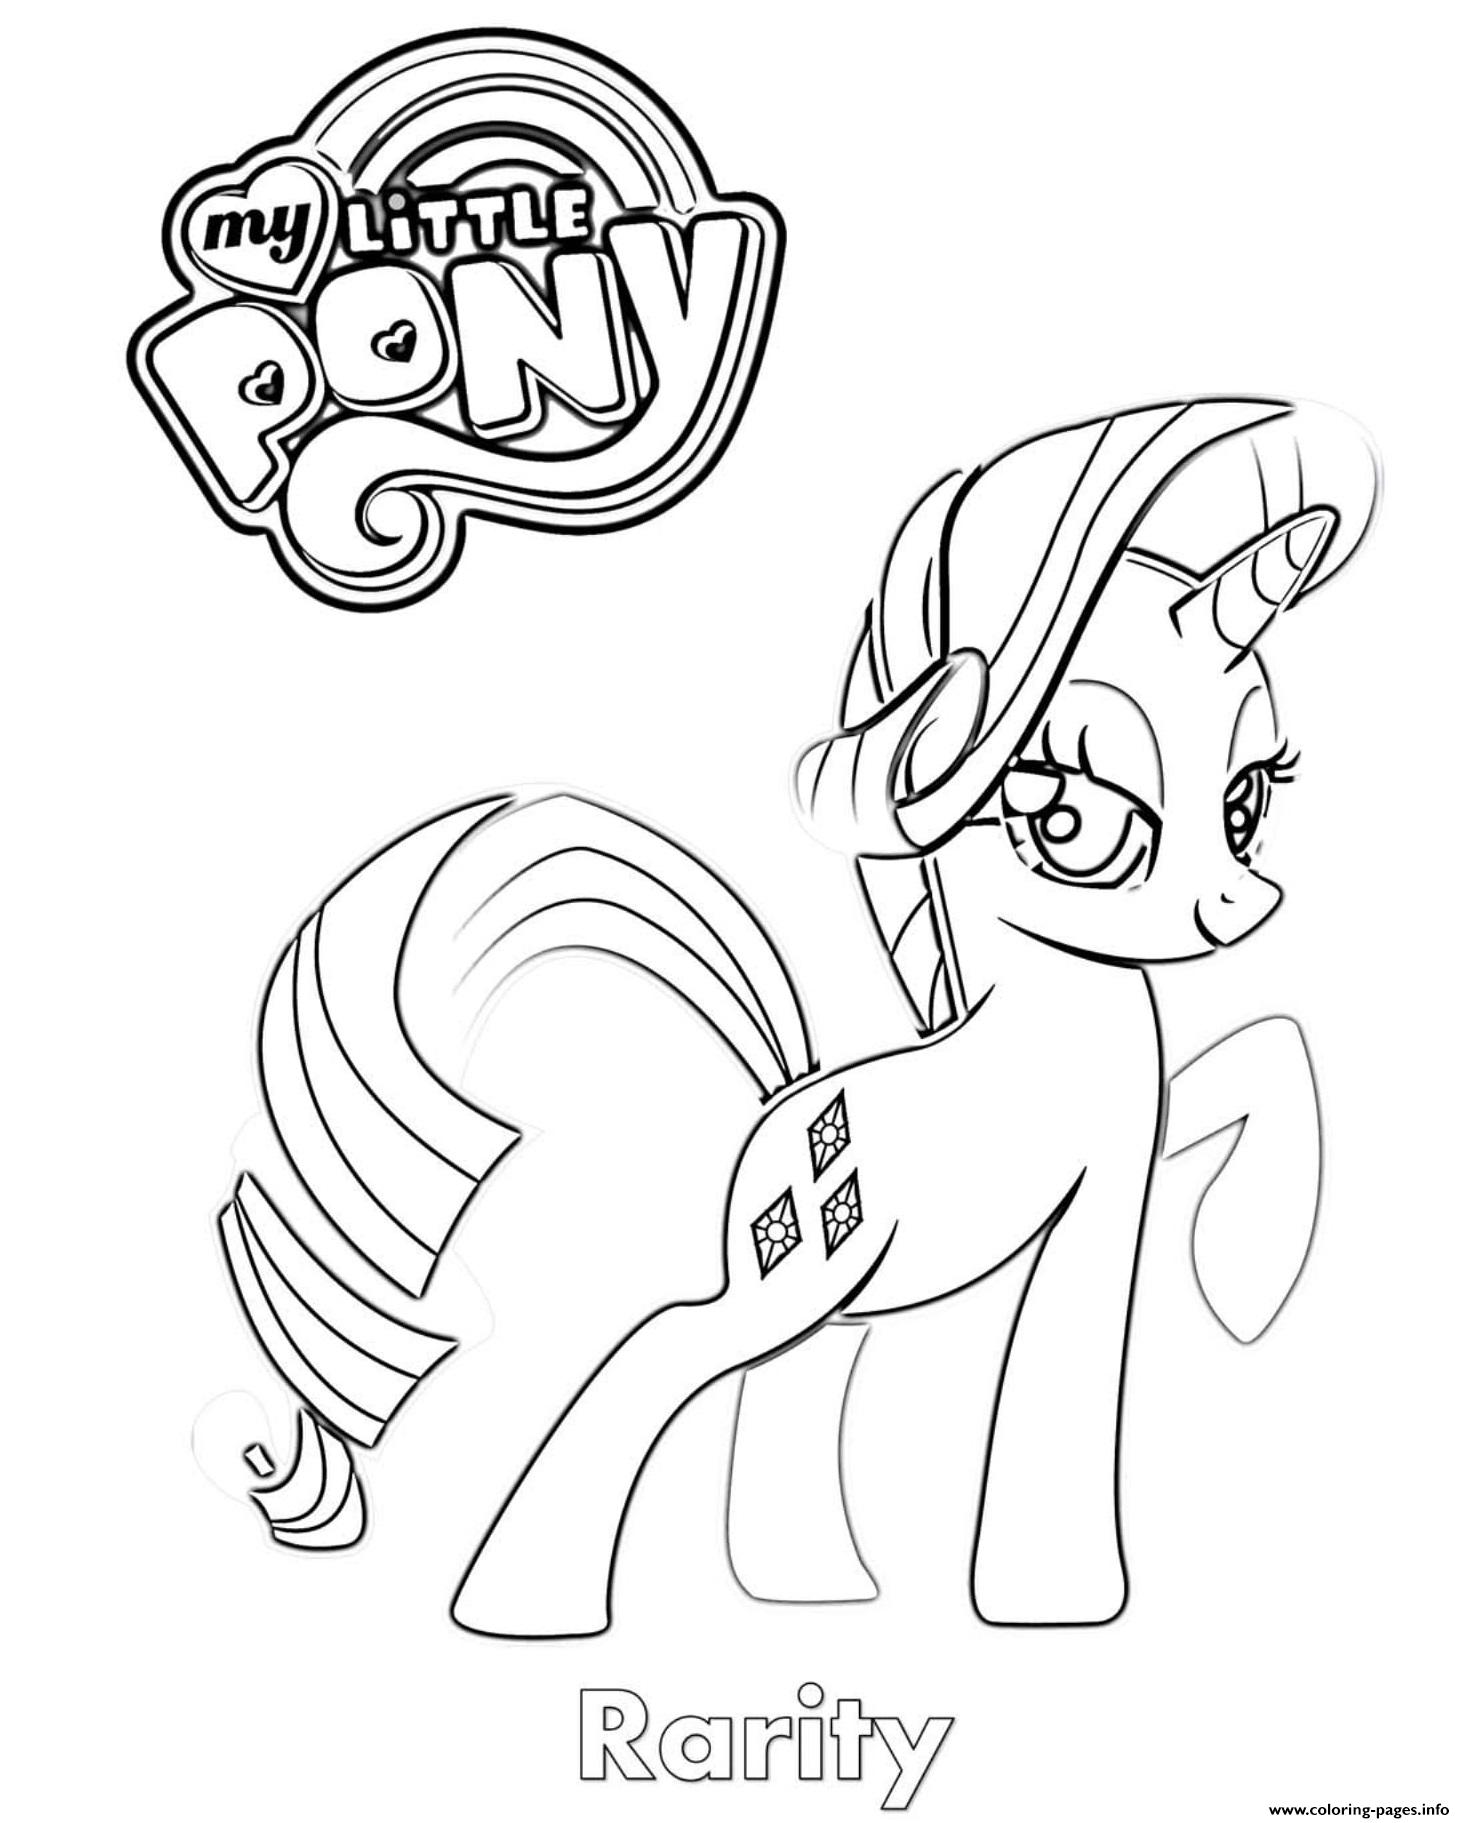 rarity coloring page rarity coloring pages my little pony printables coloring coloring page rarity